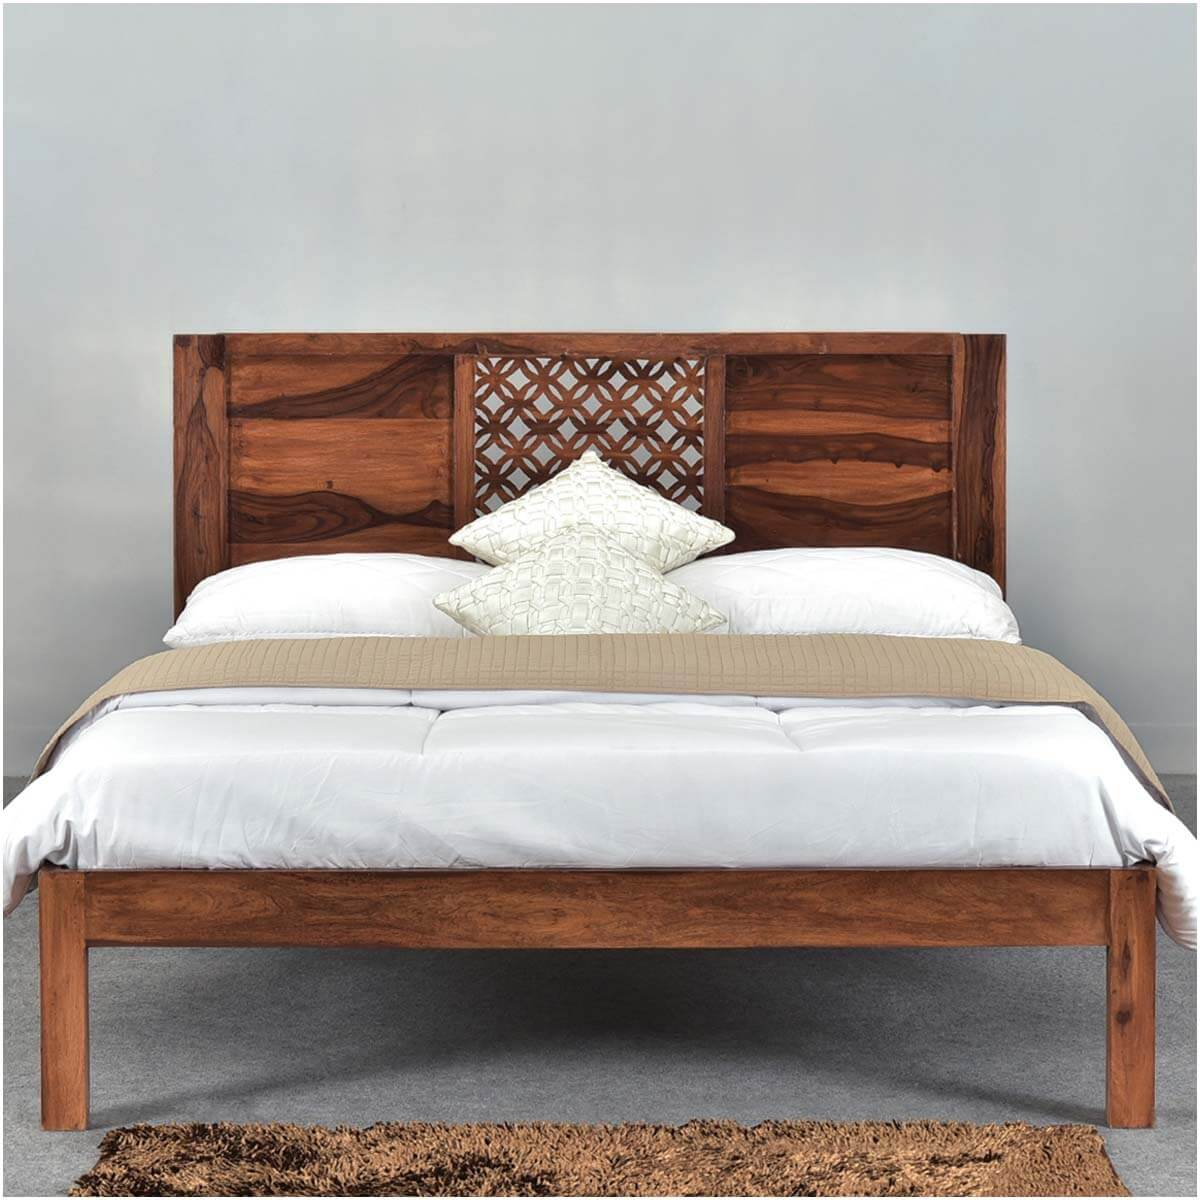 Diamond lattice solid wood rustic platform bed frame w Wood platform bed